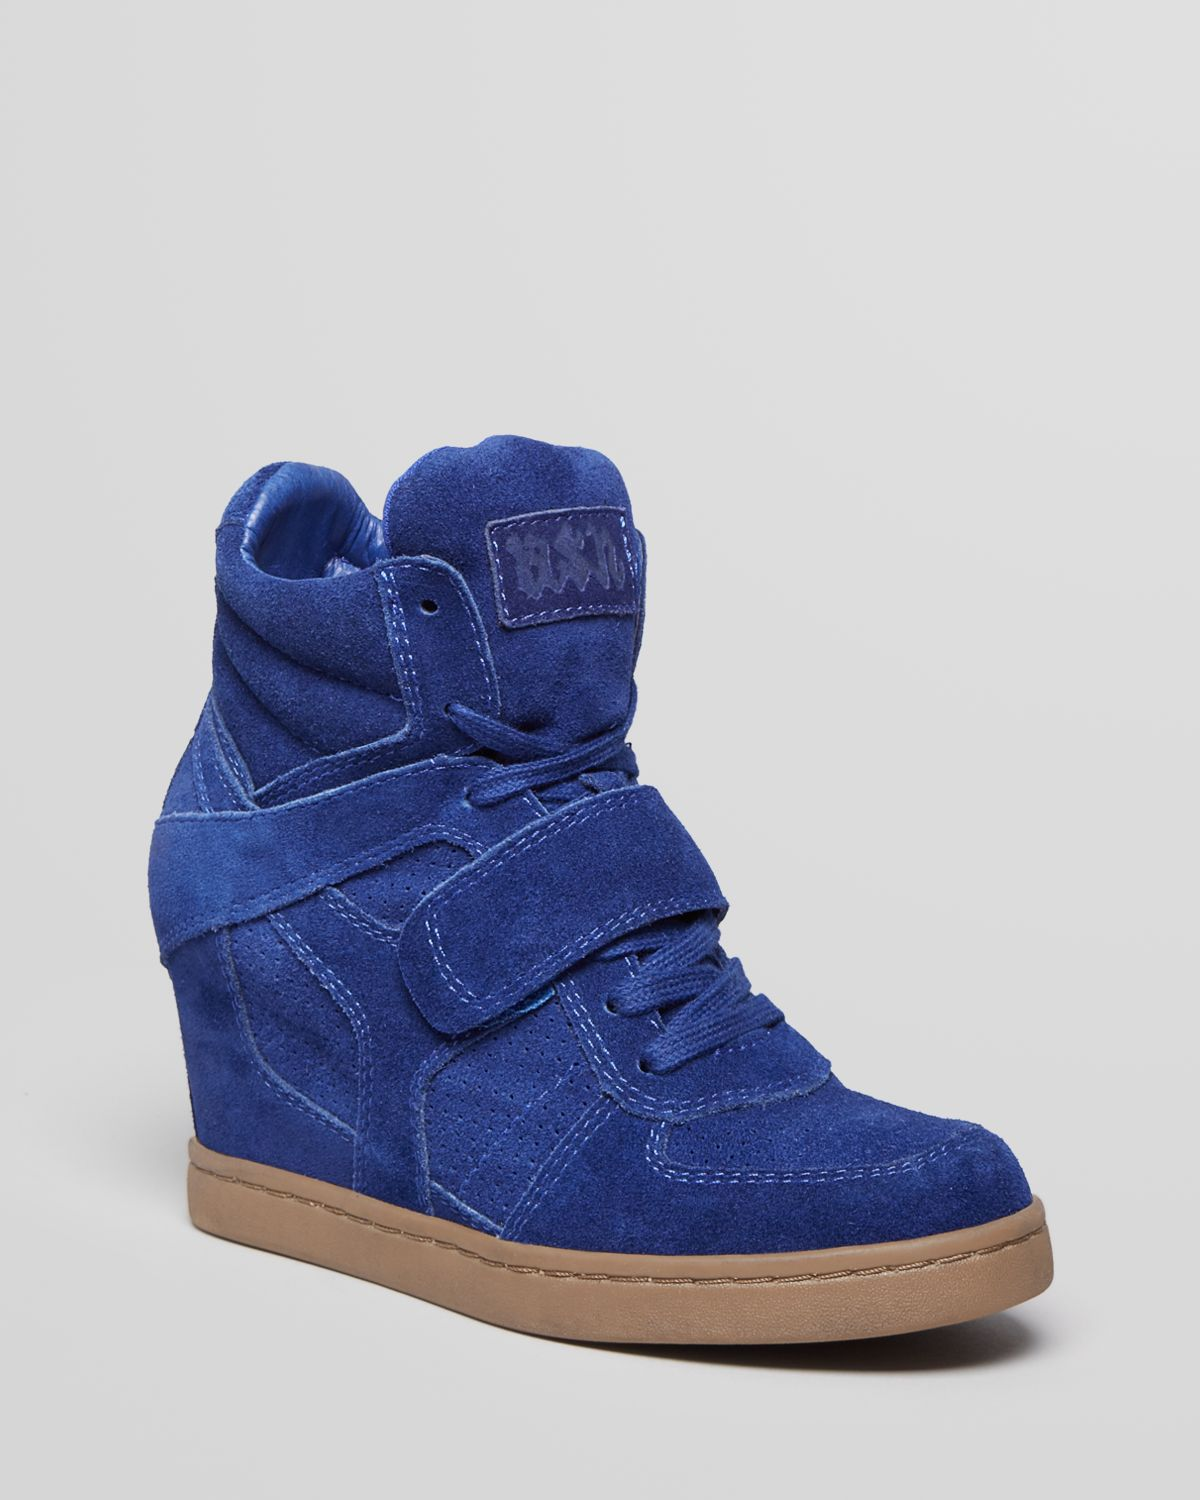 Ash Cool Wedge Sneaker 28 Images Ash Cool Mesh Wedge